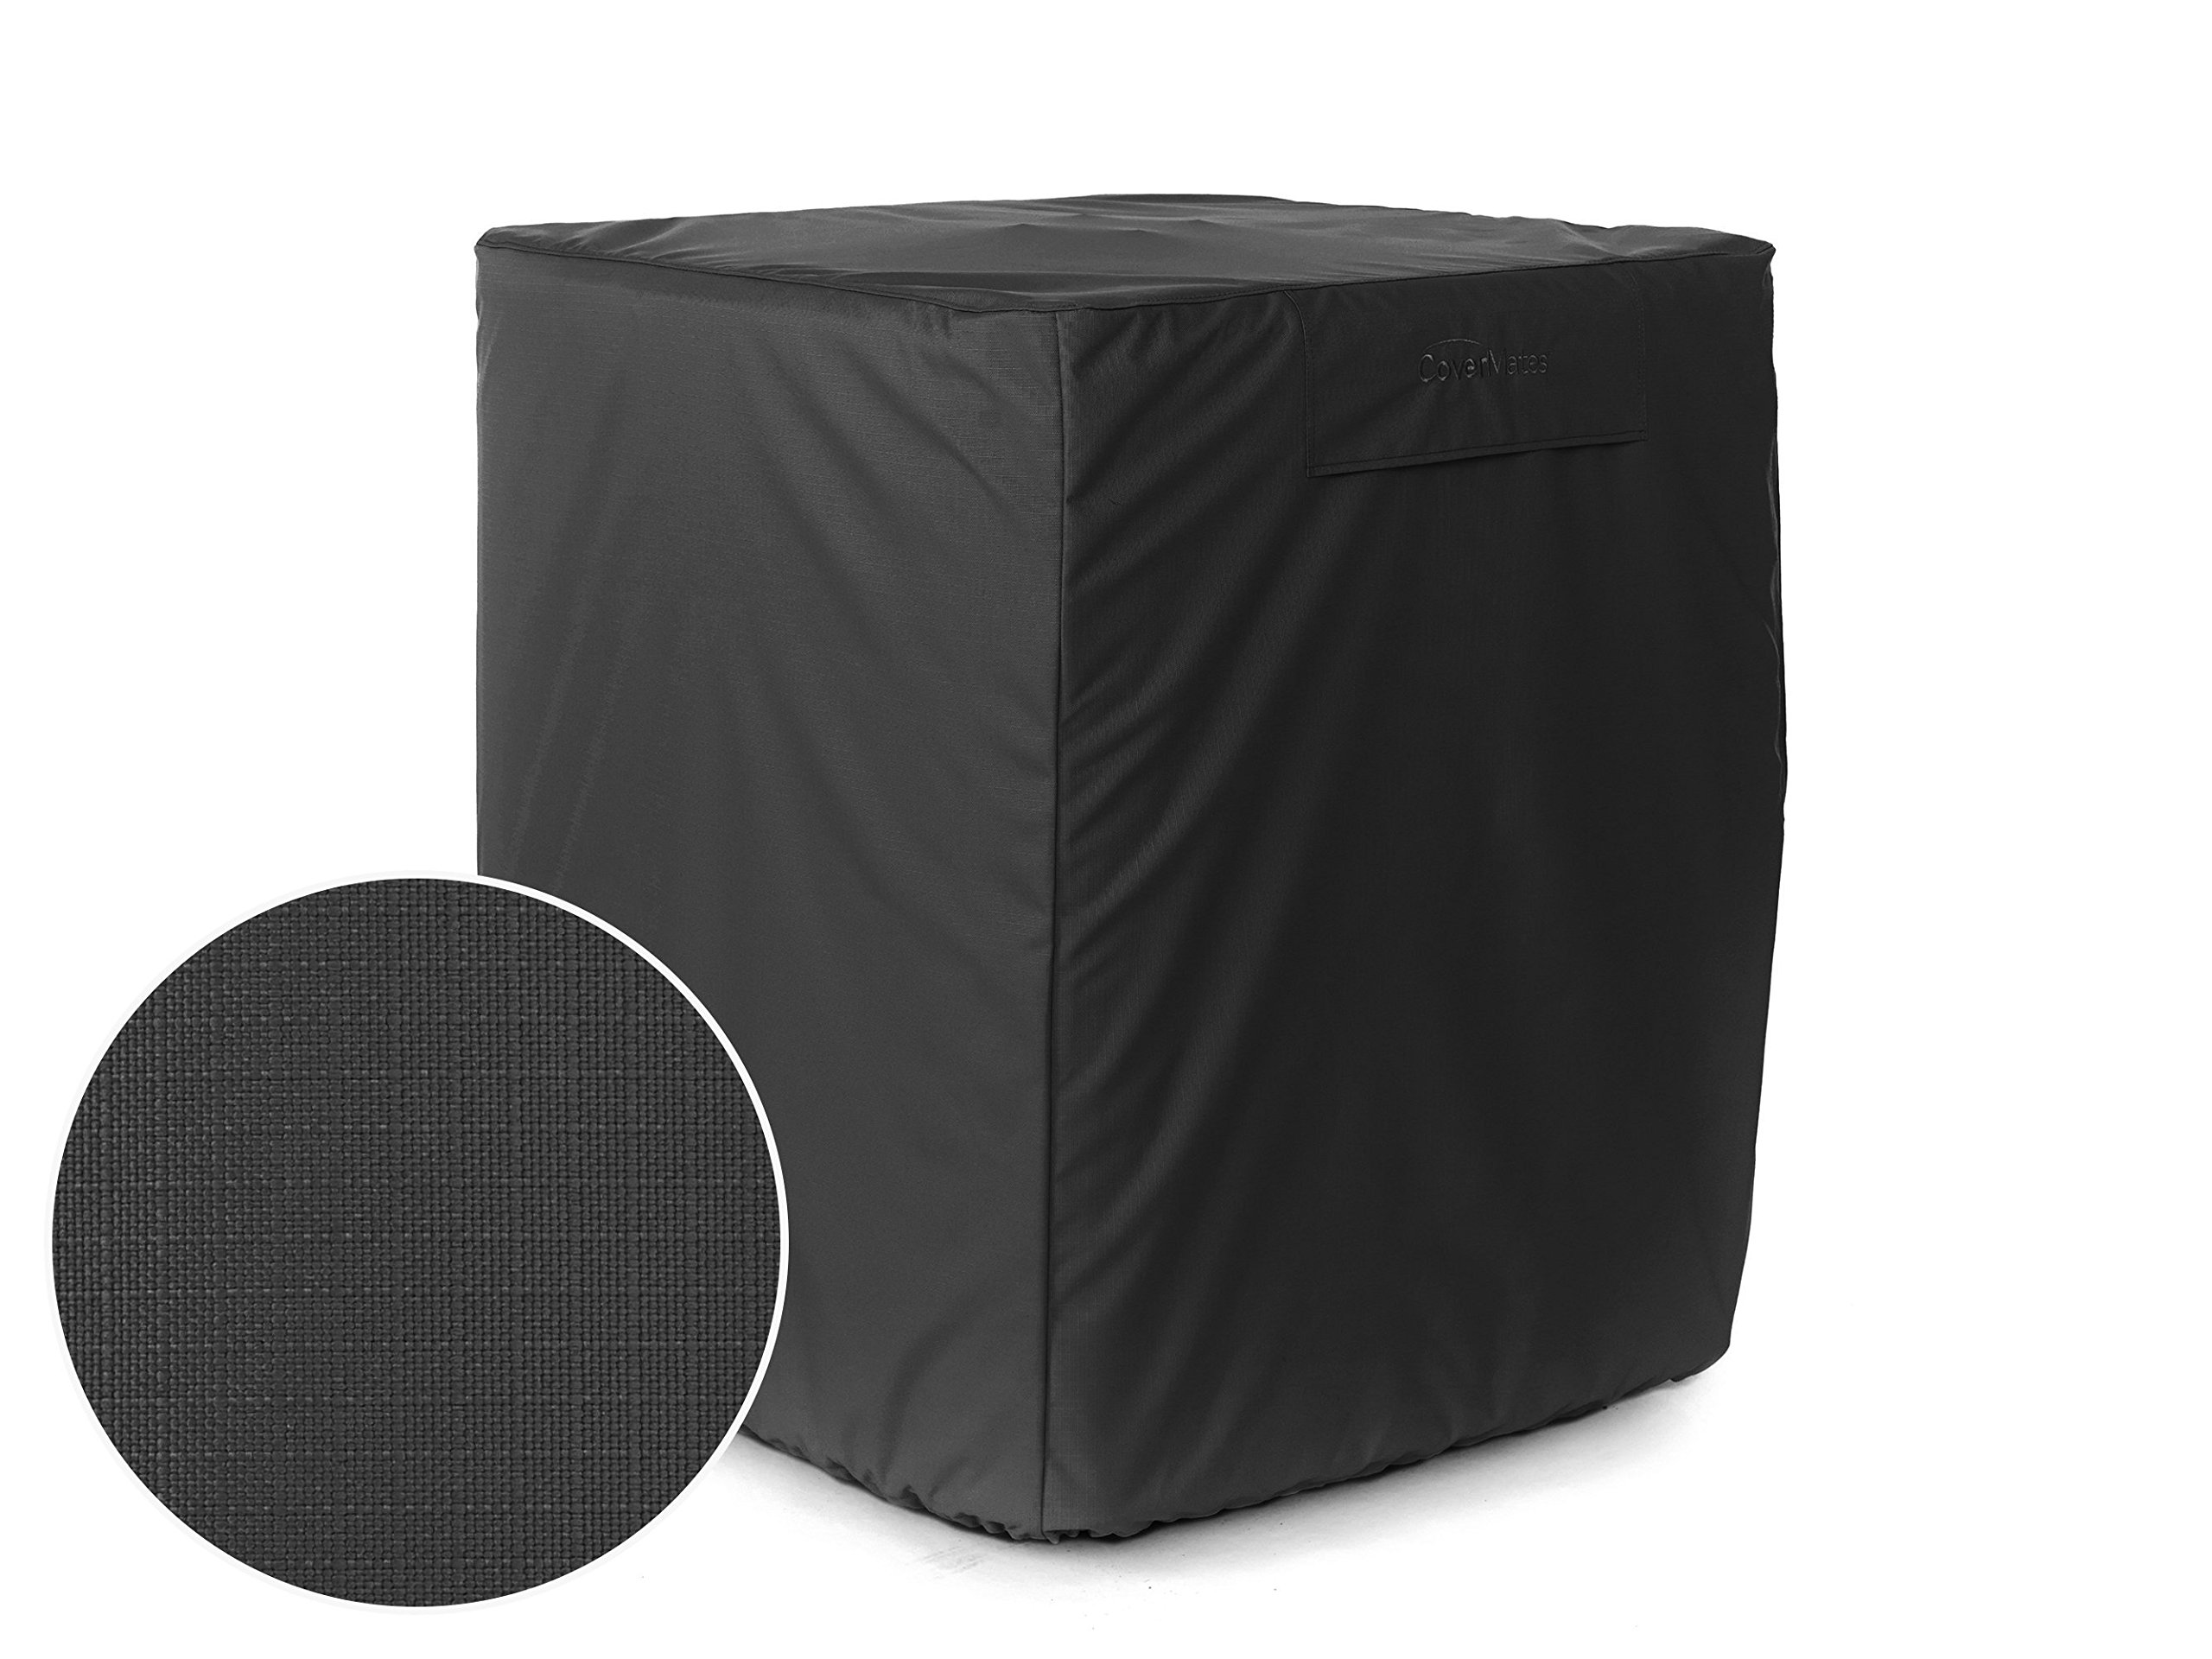 Covermates - Air Conditioner Cover - Fits 24 Width x 24 Depth x 30 Height - Ultima Ripstop - 600D Polyester - Covered Vent - Middle/Bottom Buckle Strap - 7YR Warranty - Water Resistant - Ripstop Black